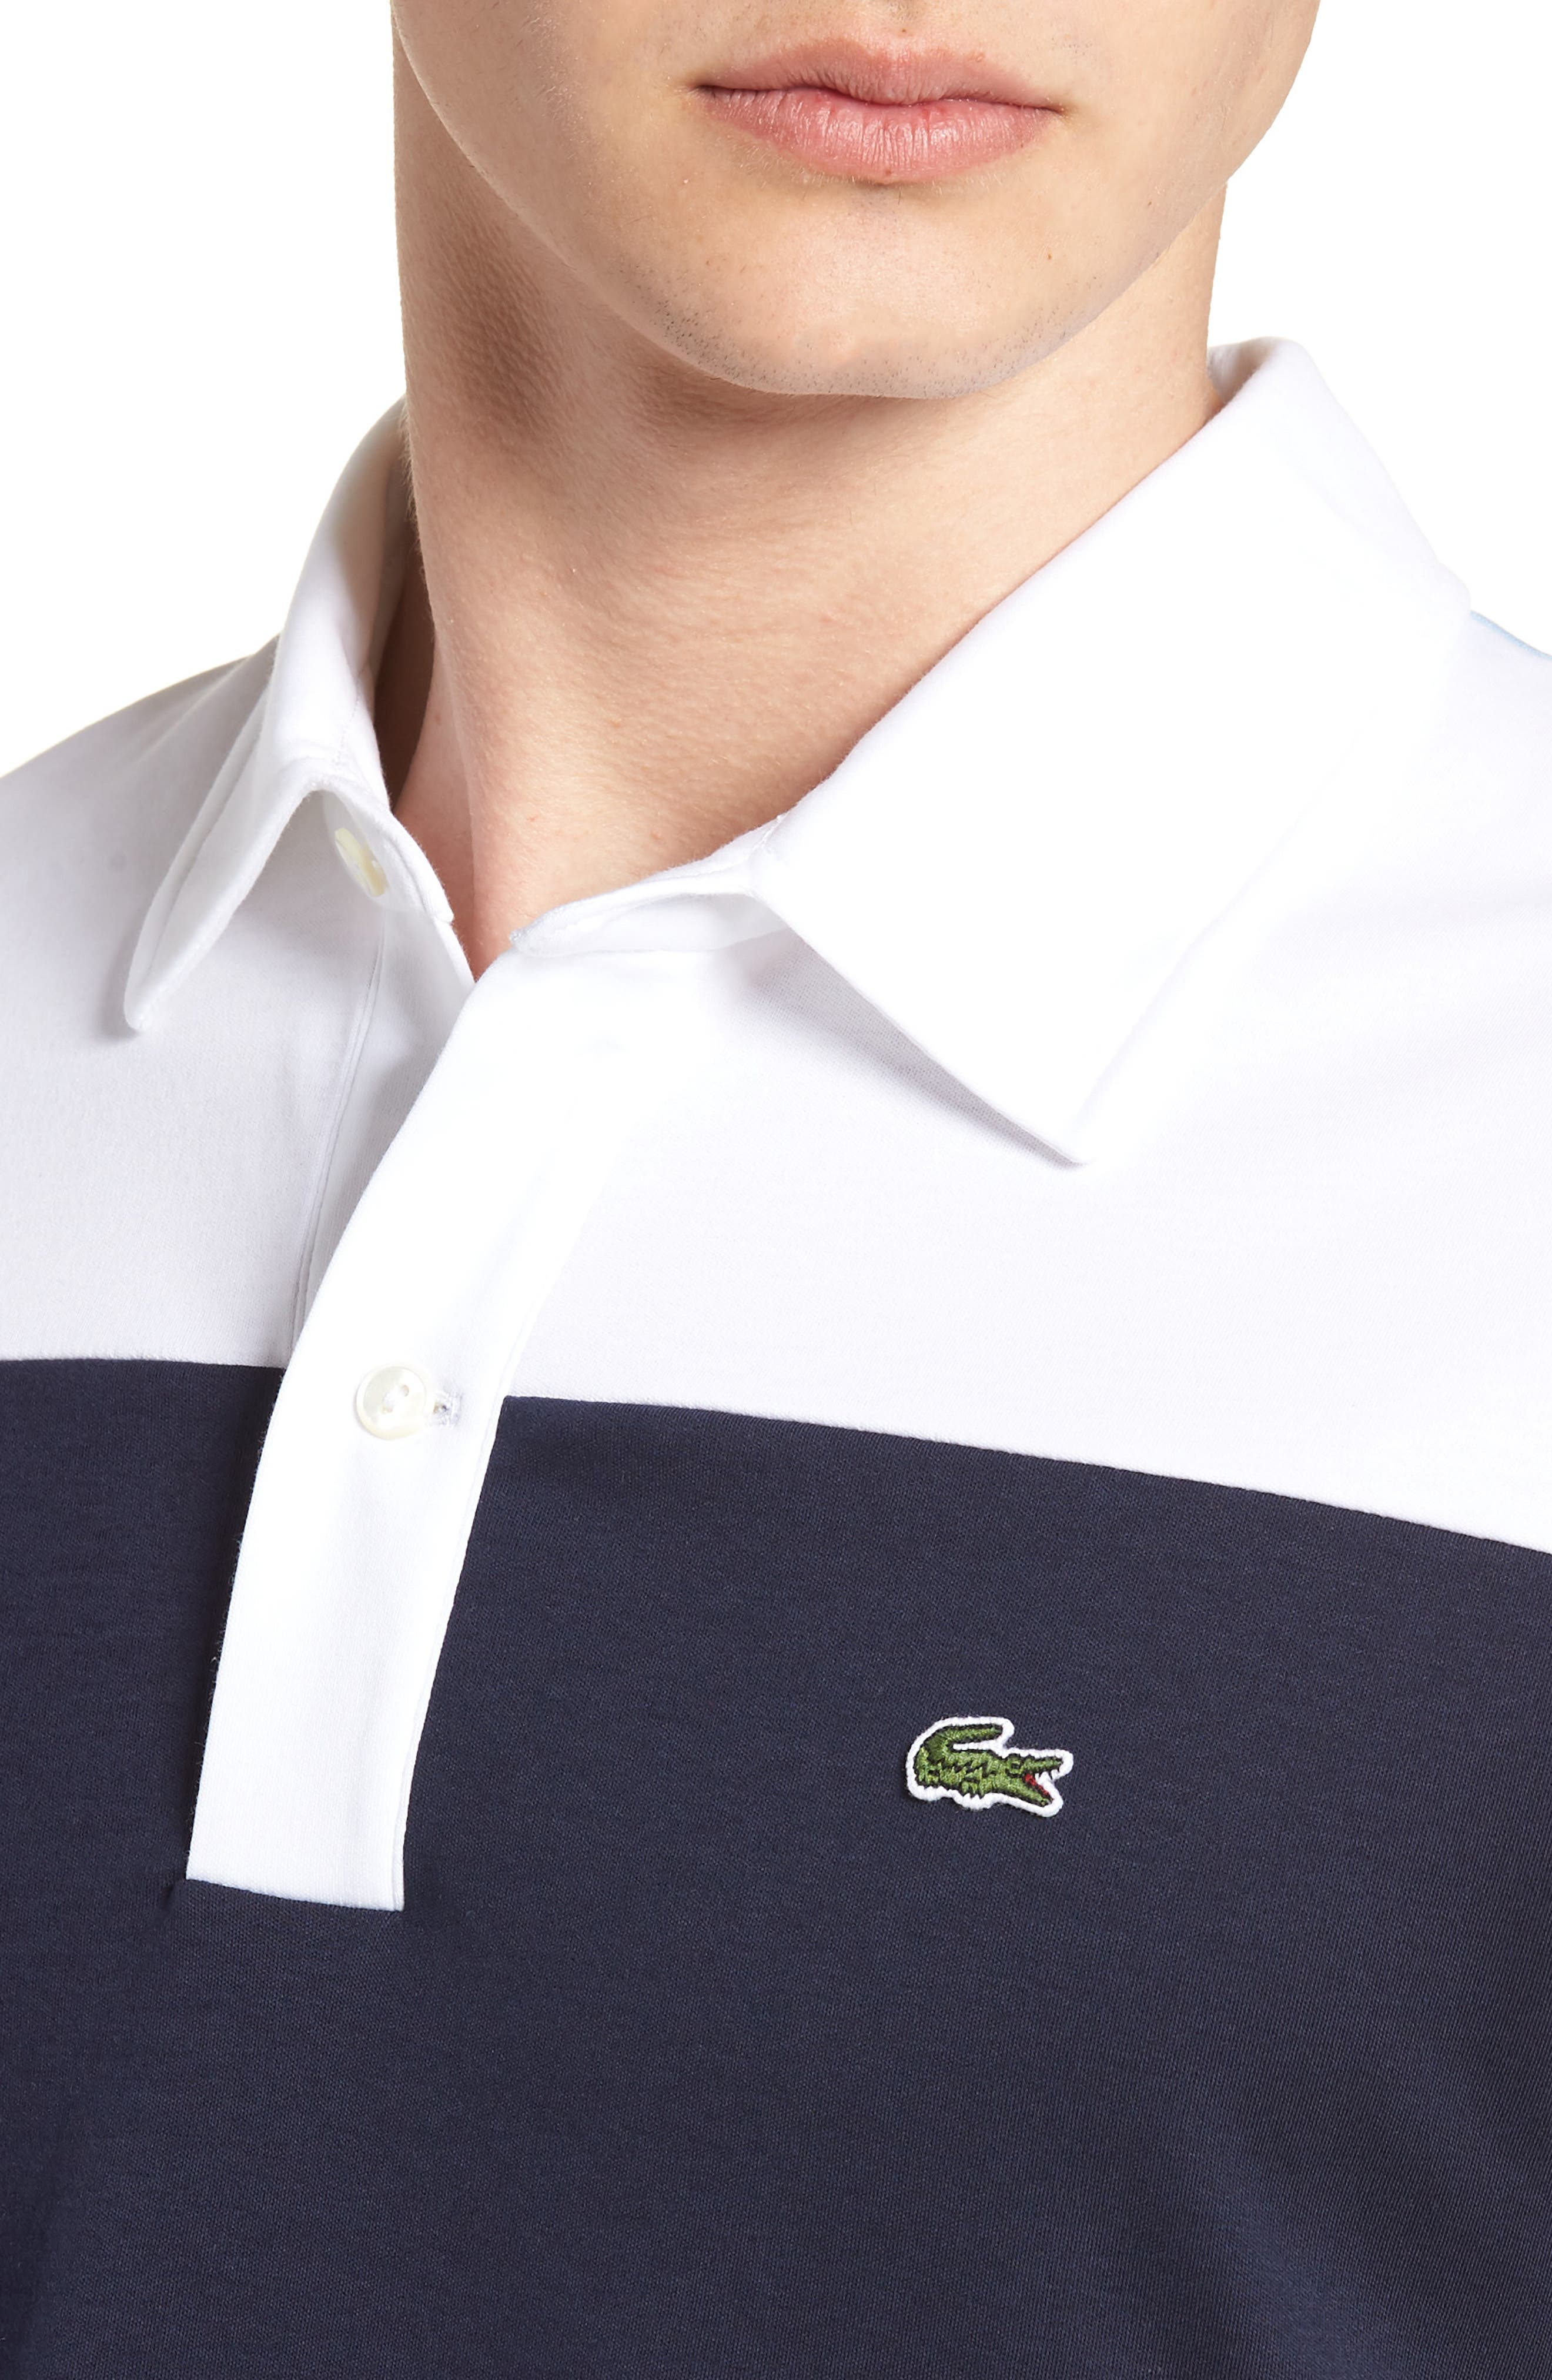 85th Anniversary Polo,                             Alternate thumbnail 4, color,                             DRAGONFLY/ NAVY BLUE-WHITE